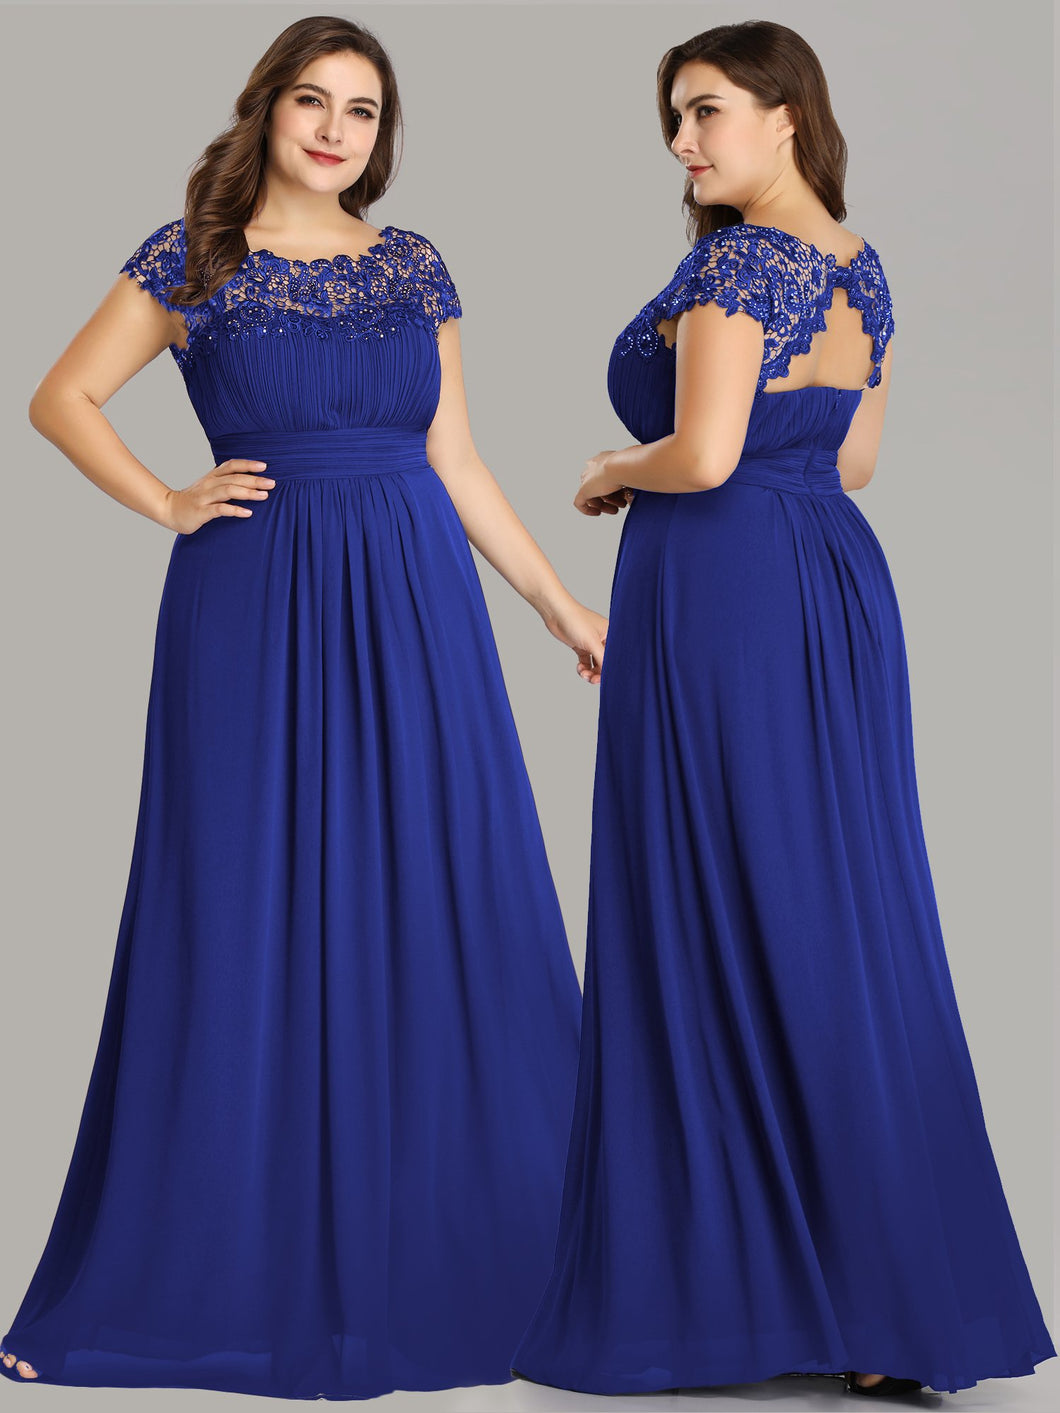 Chiffon Bridesmaid Dress with cap sleeve - Sapphire Blue